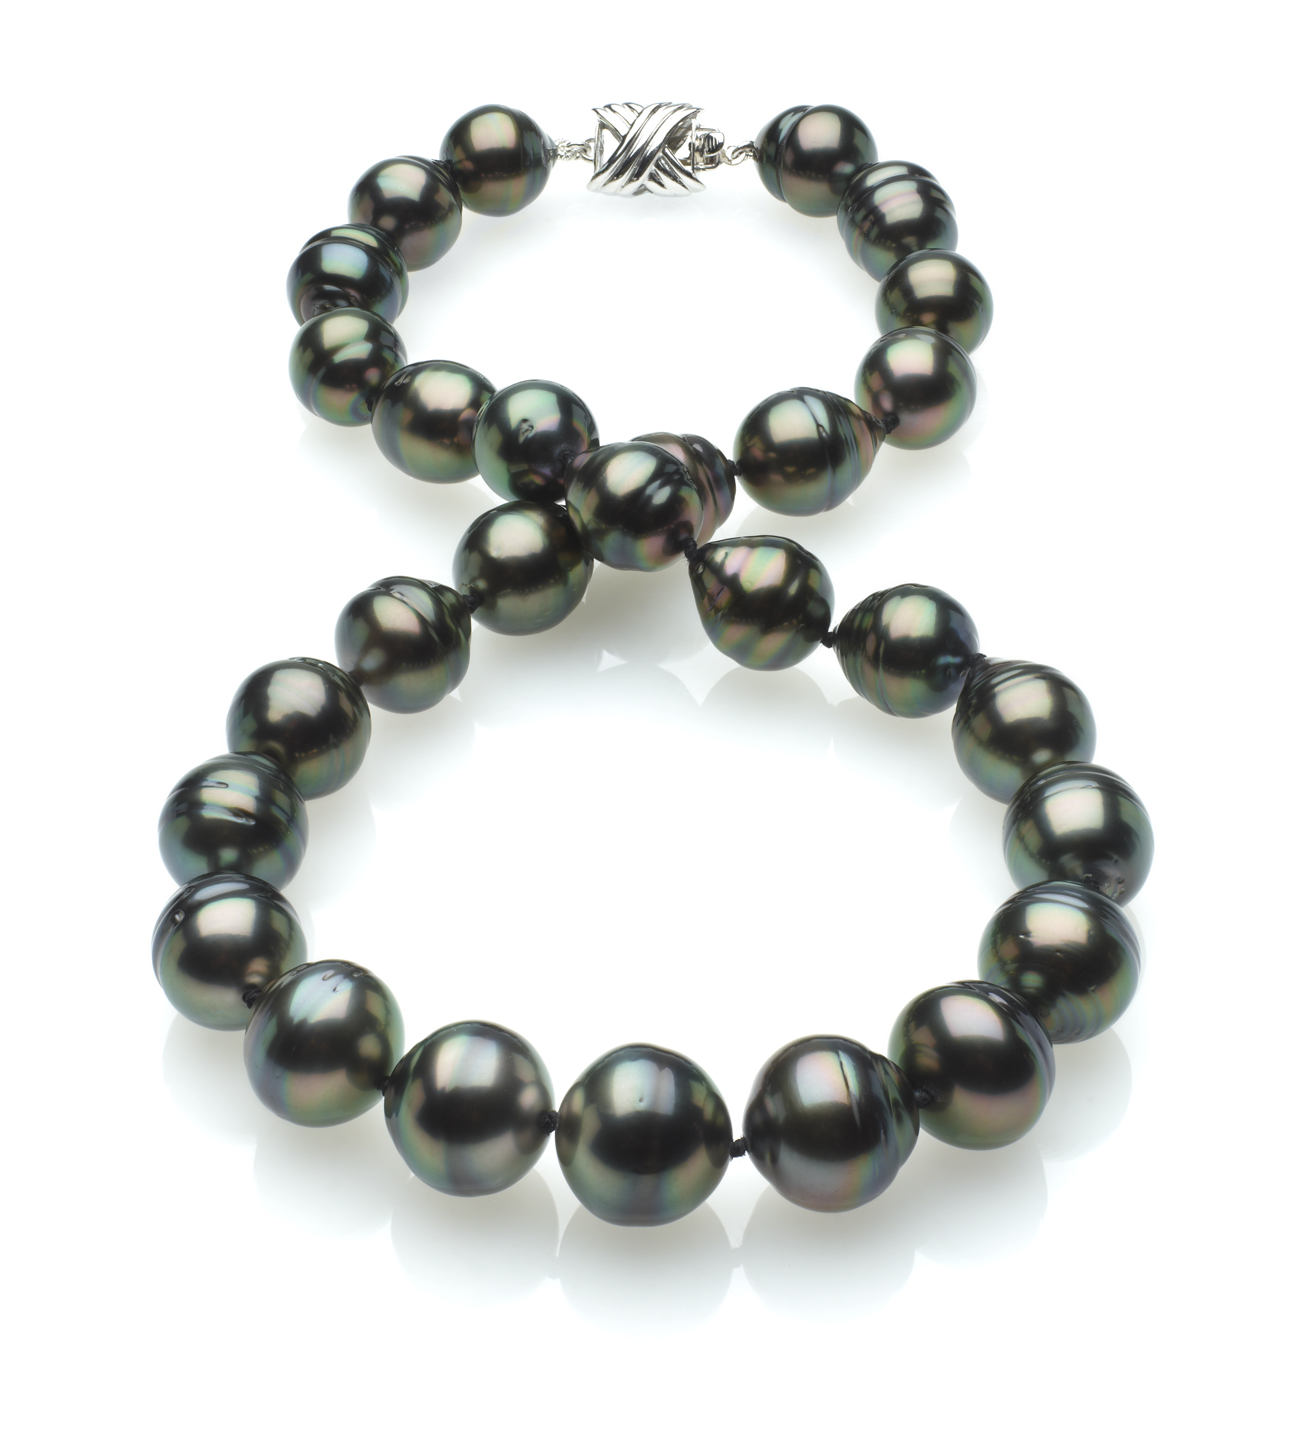 Peacock Color Tahitian Baroque Pearl Necklace 11mm X 13mm